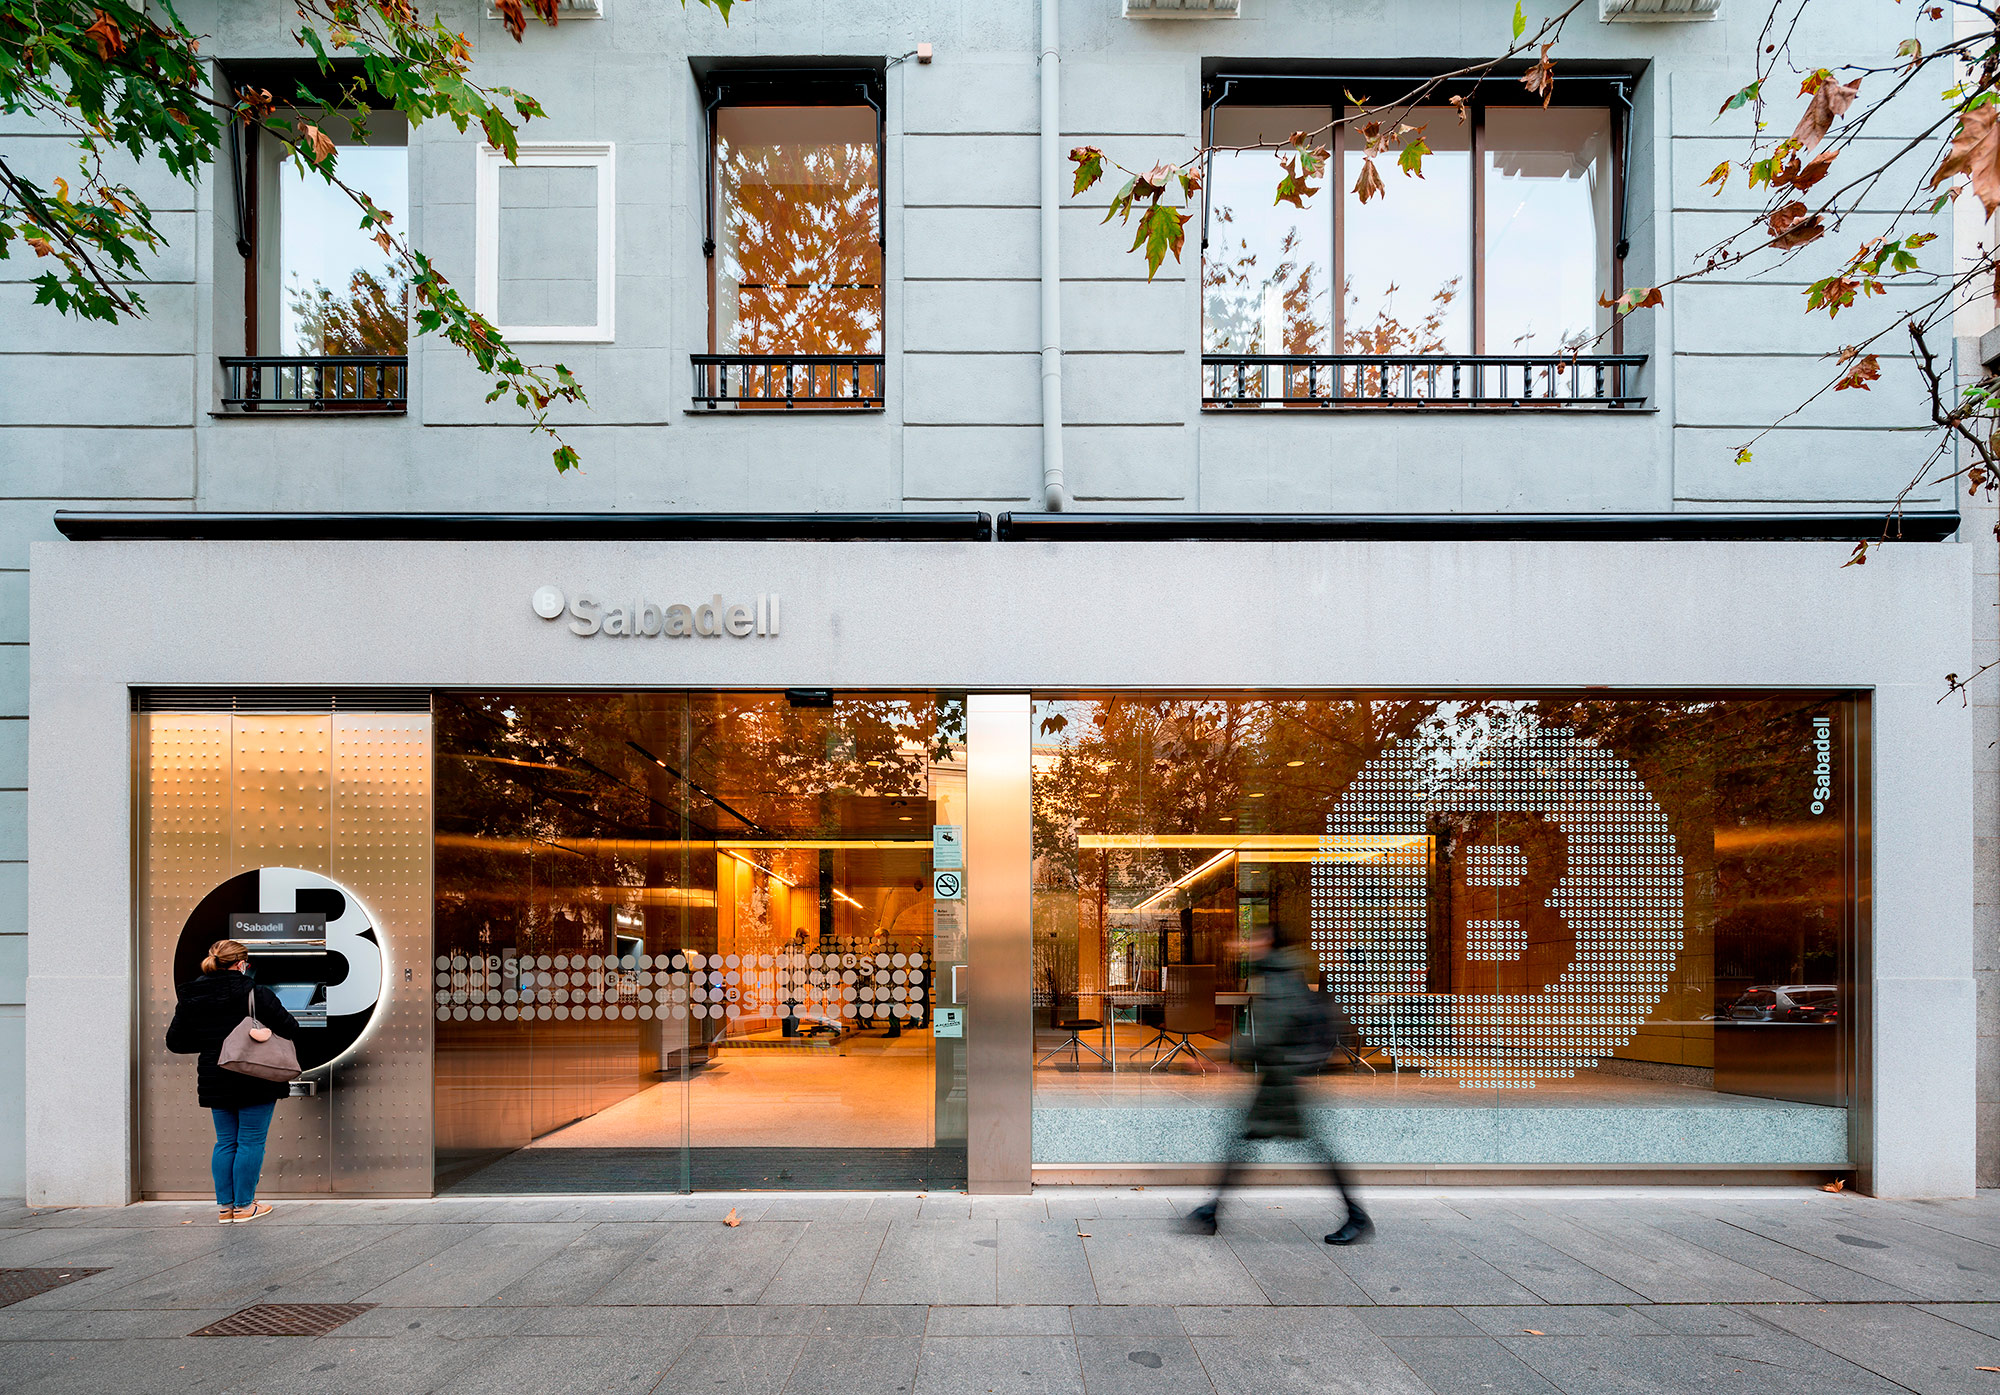 Banc Sabadell Space in Madrid, Spain